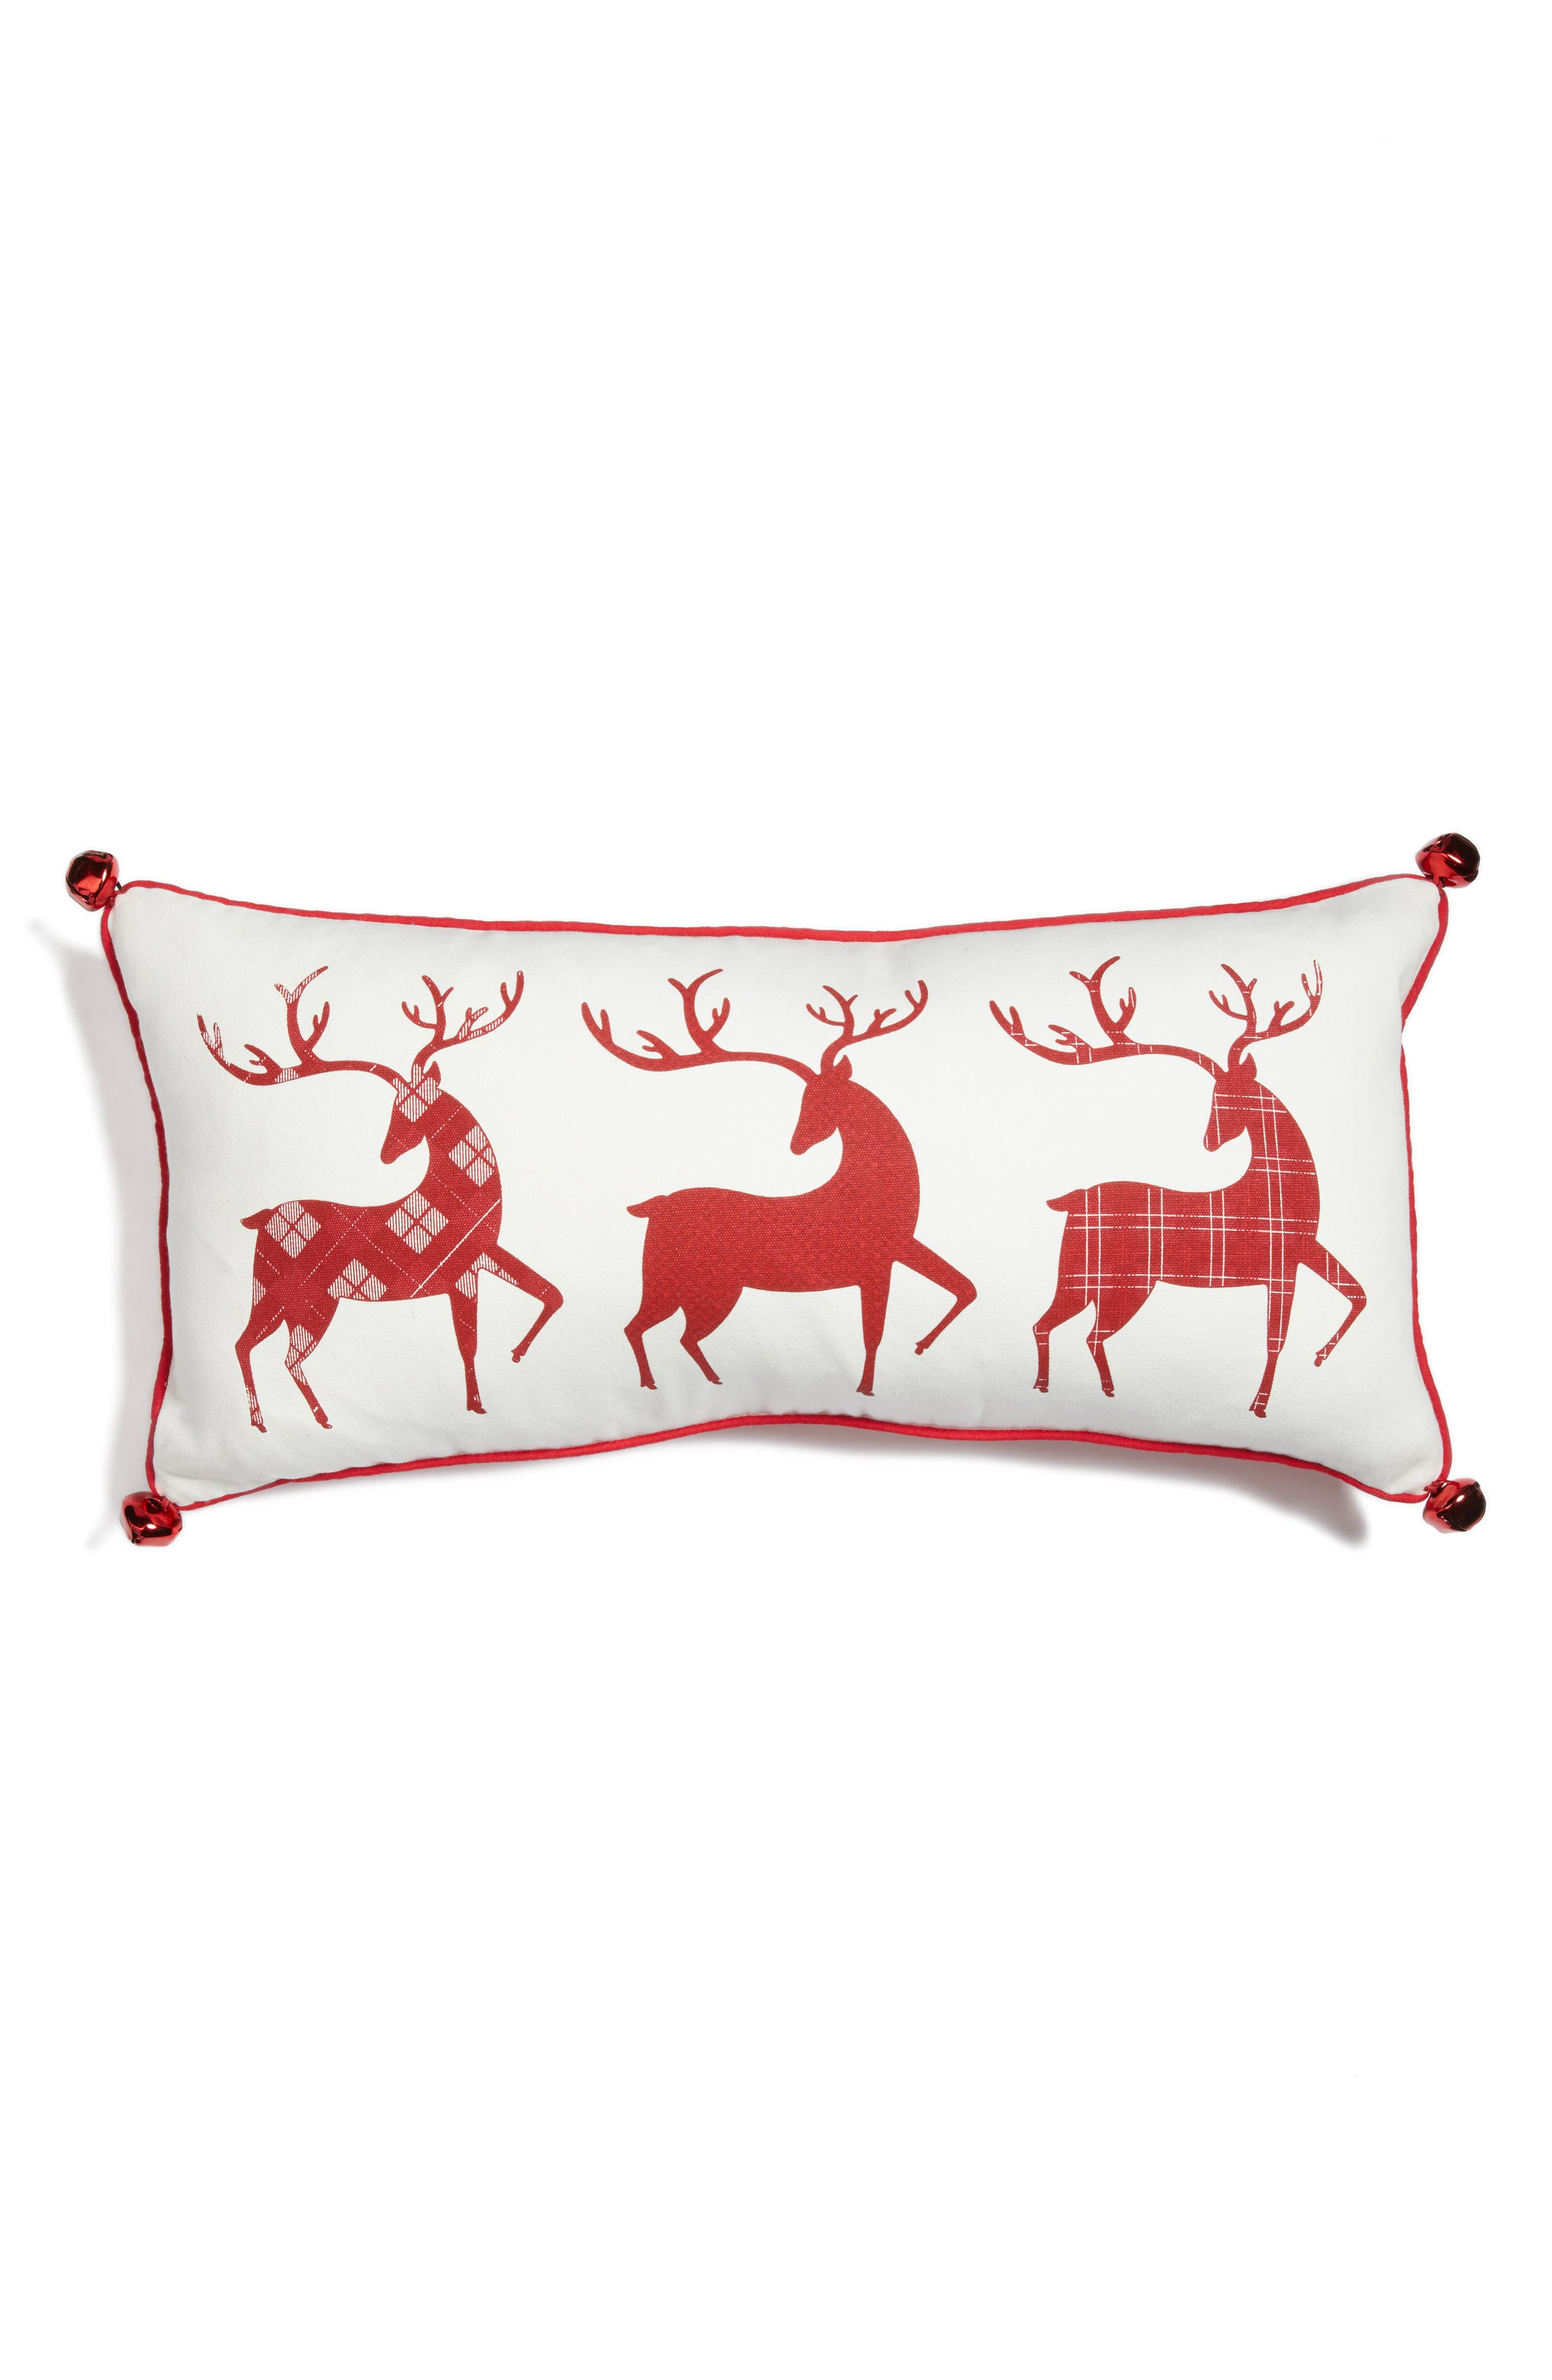 Three Reindeer Accent Pillow,                         Main,                         color, 100